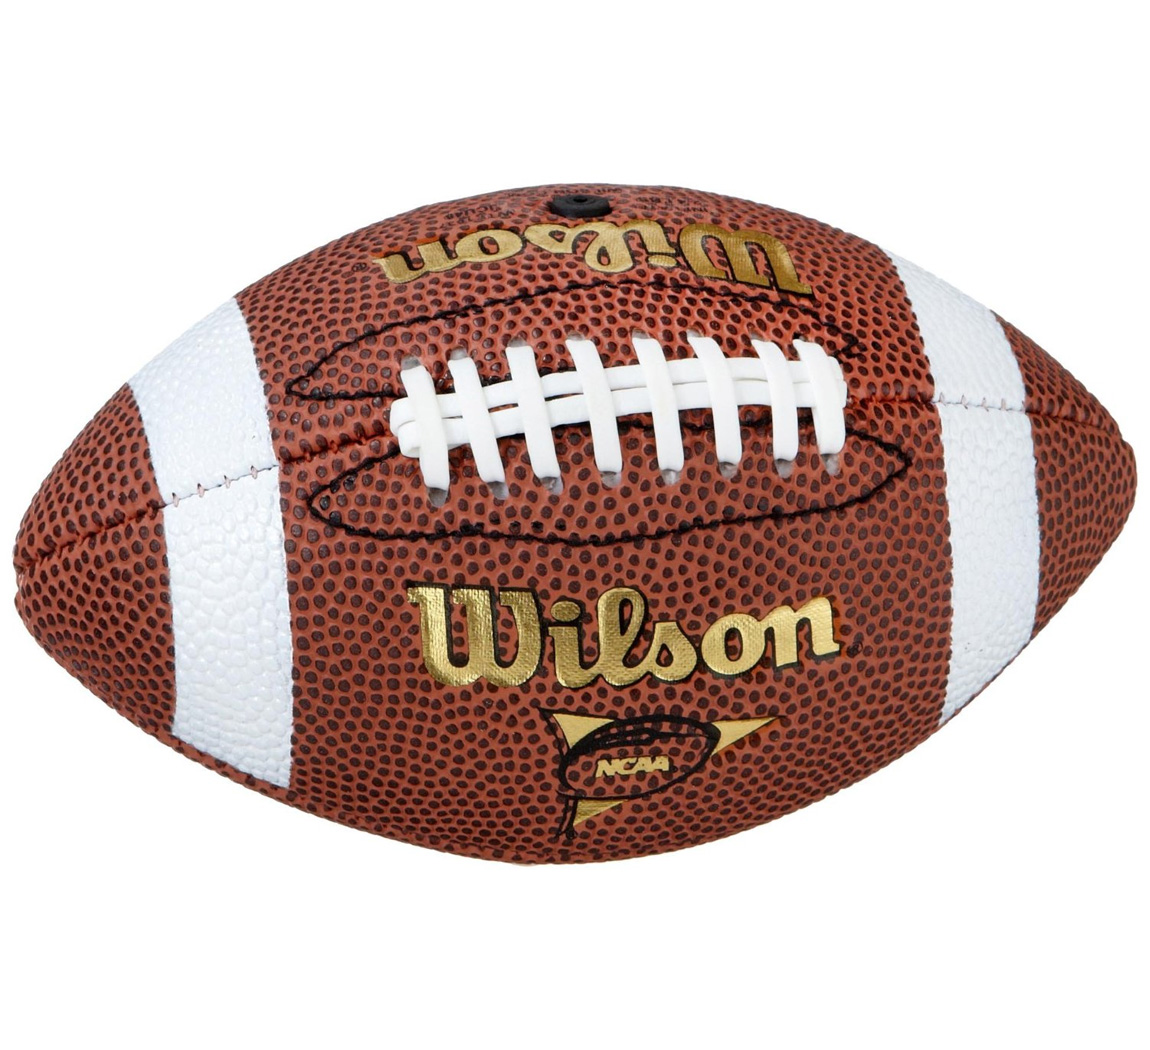 Free Football Ball, Download Free Clip Art, Free Clip Art on